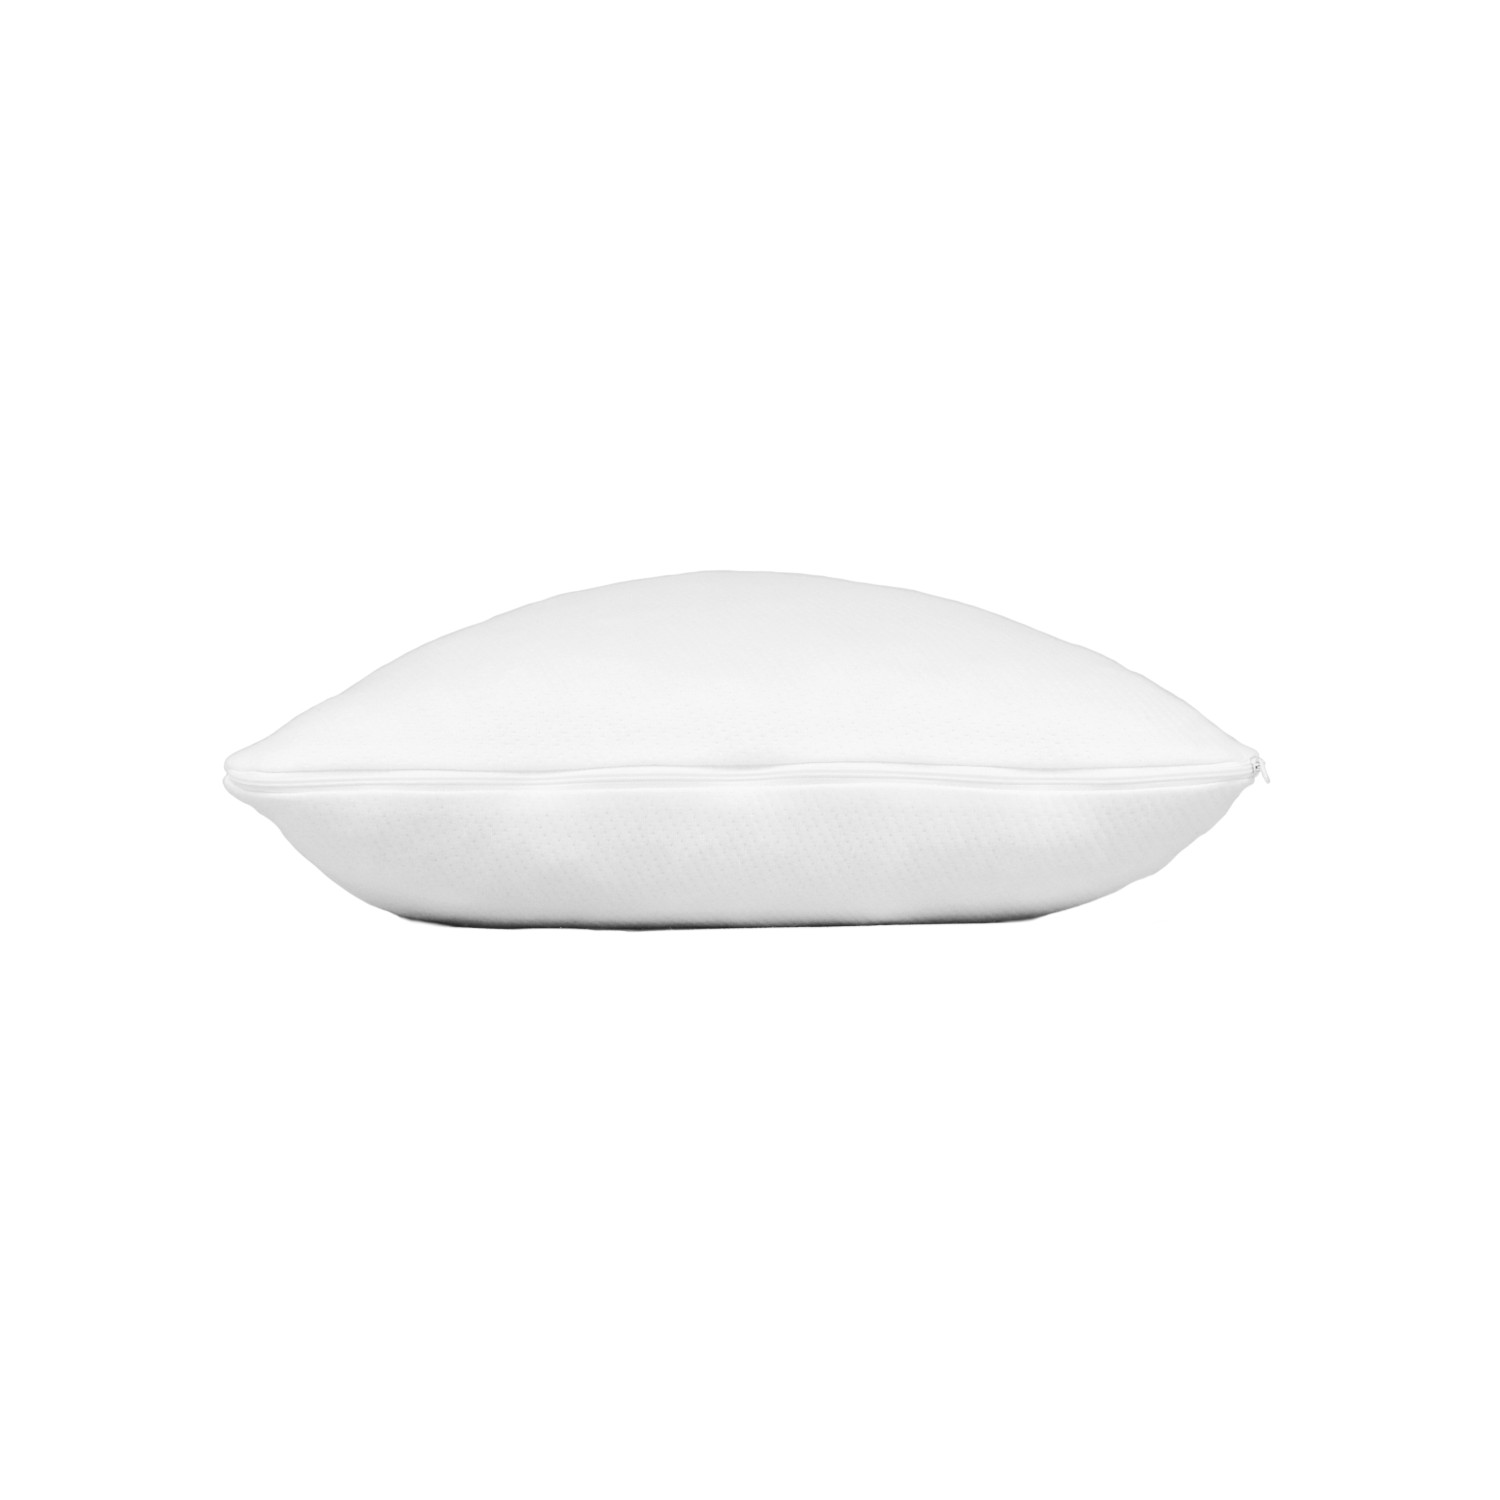 shredded memory foam pillow side 2